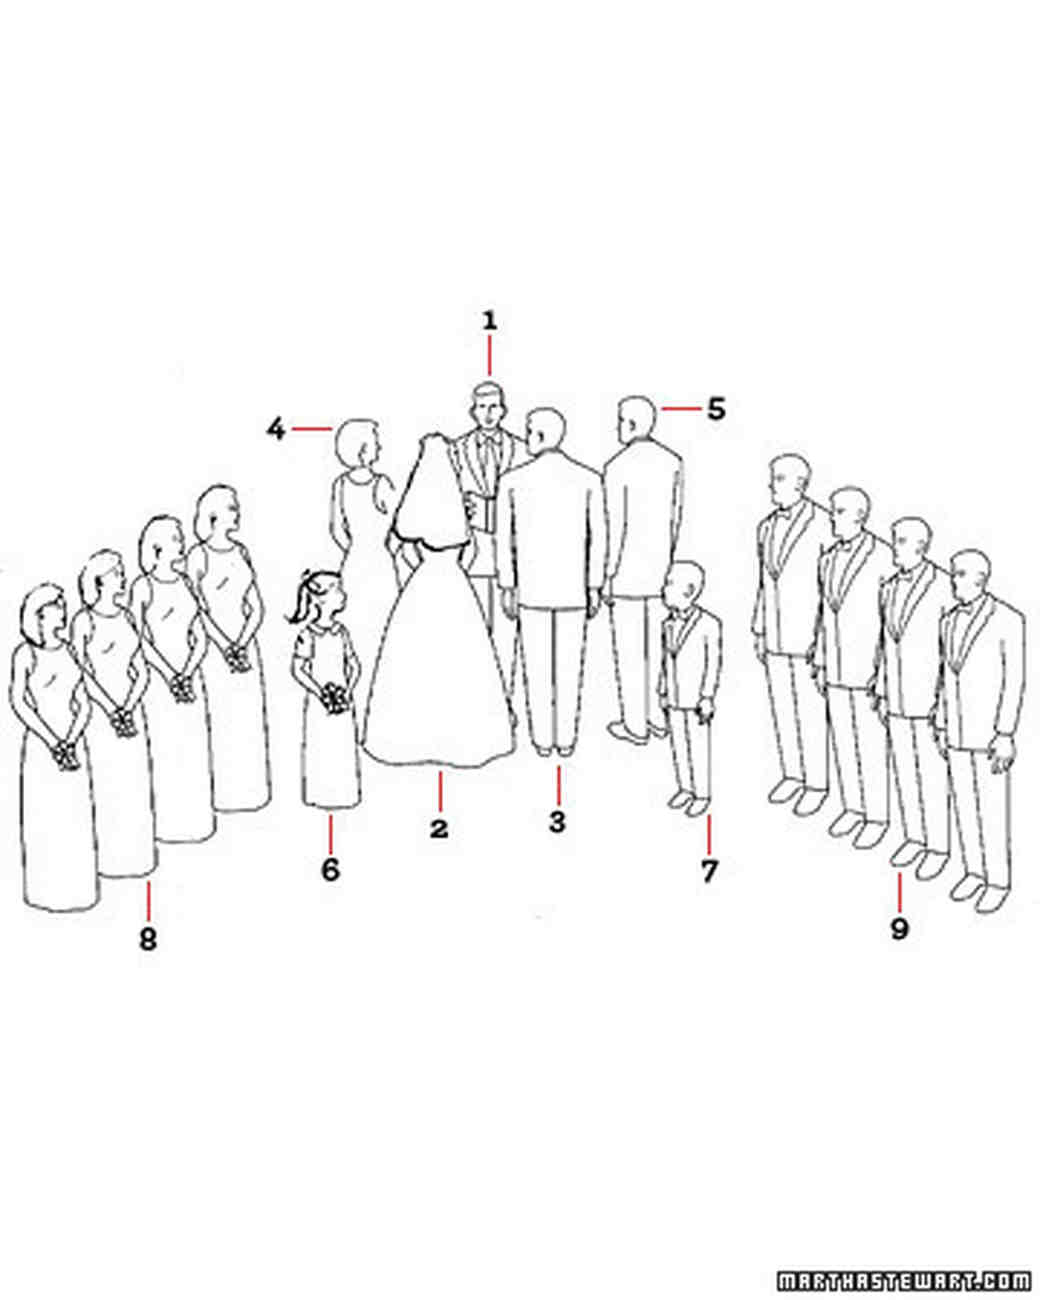 Diagram Your Big Day: Christian Wedding Ceremony Basics